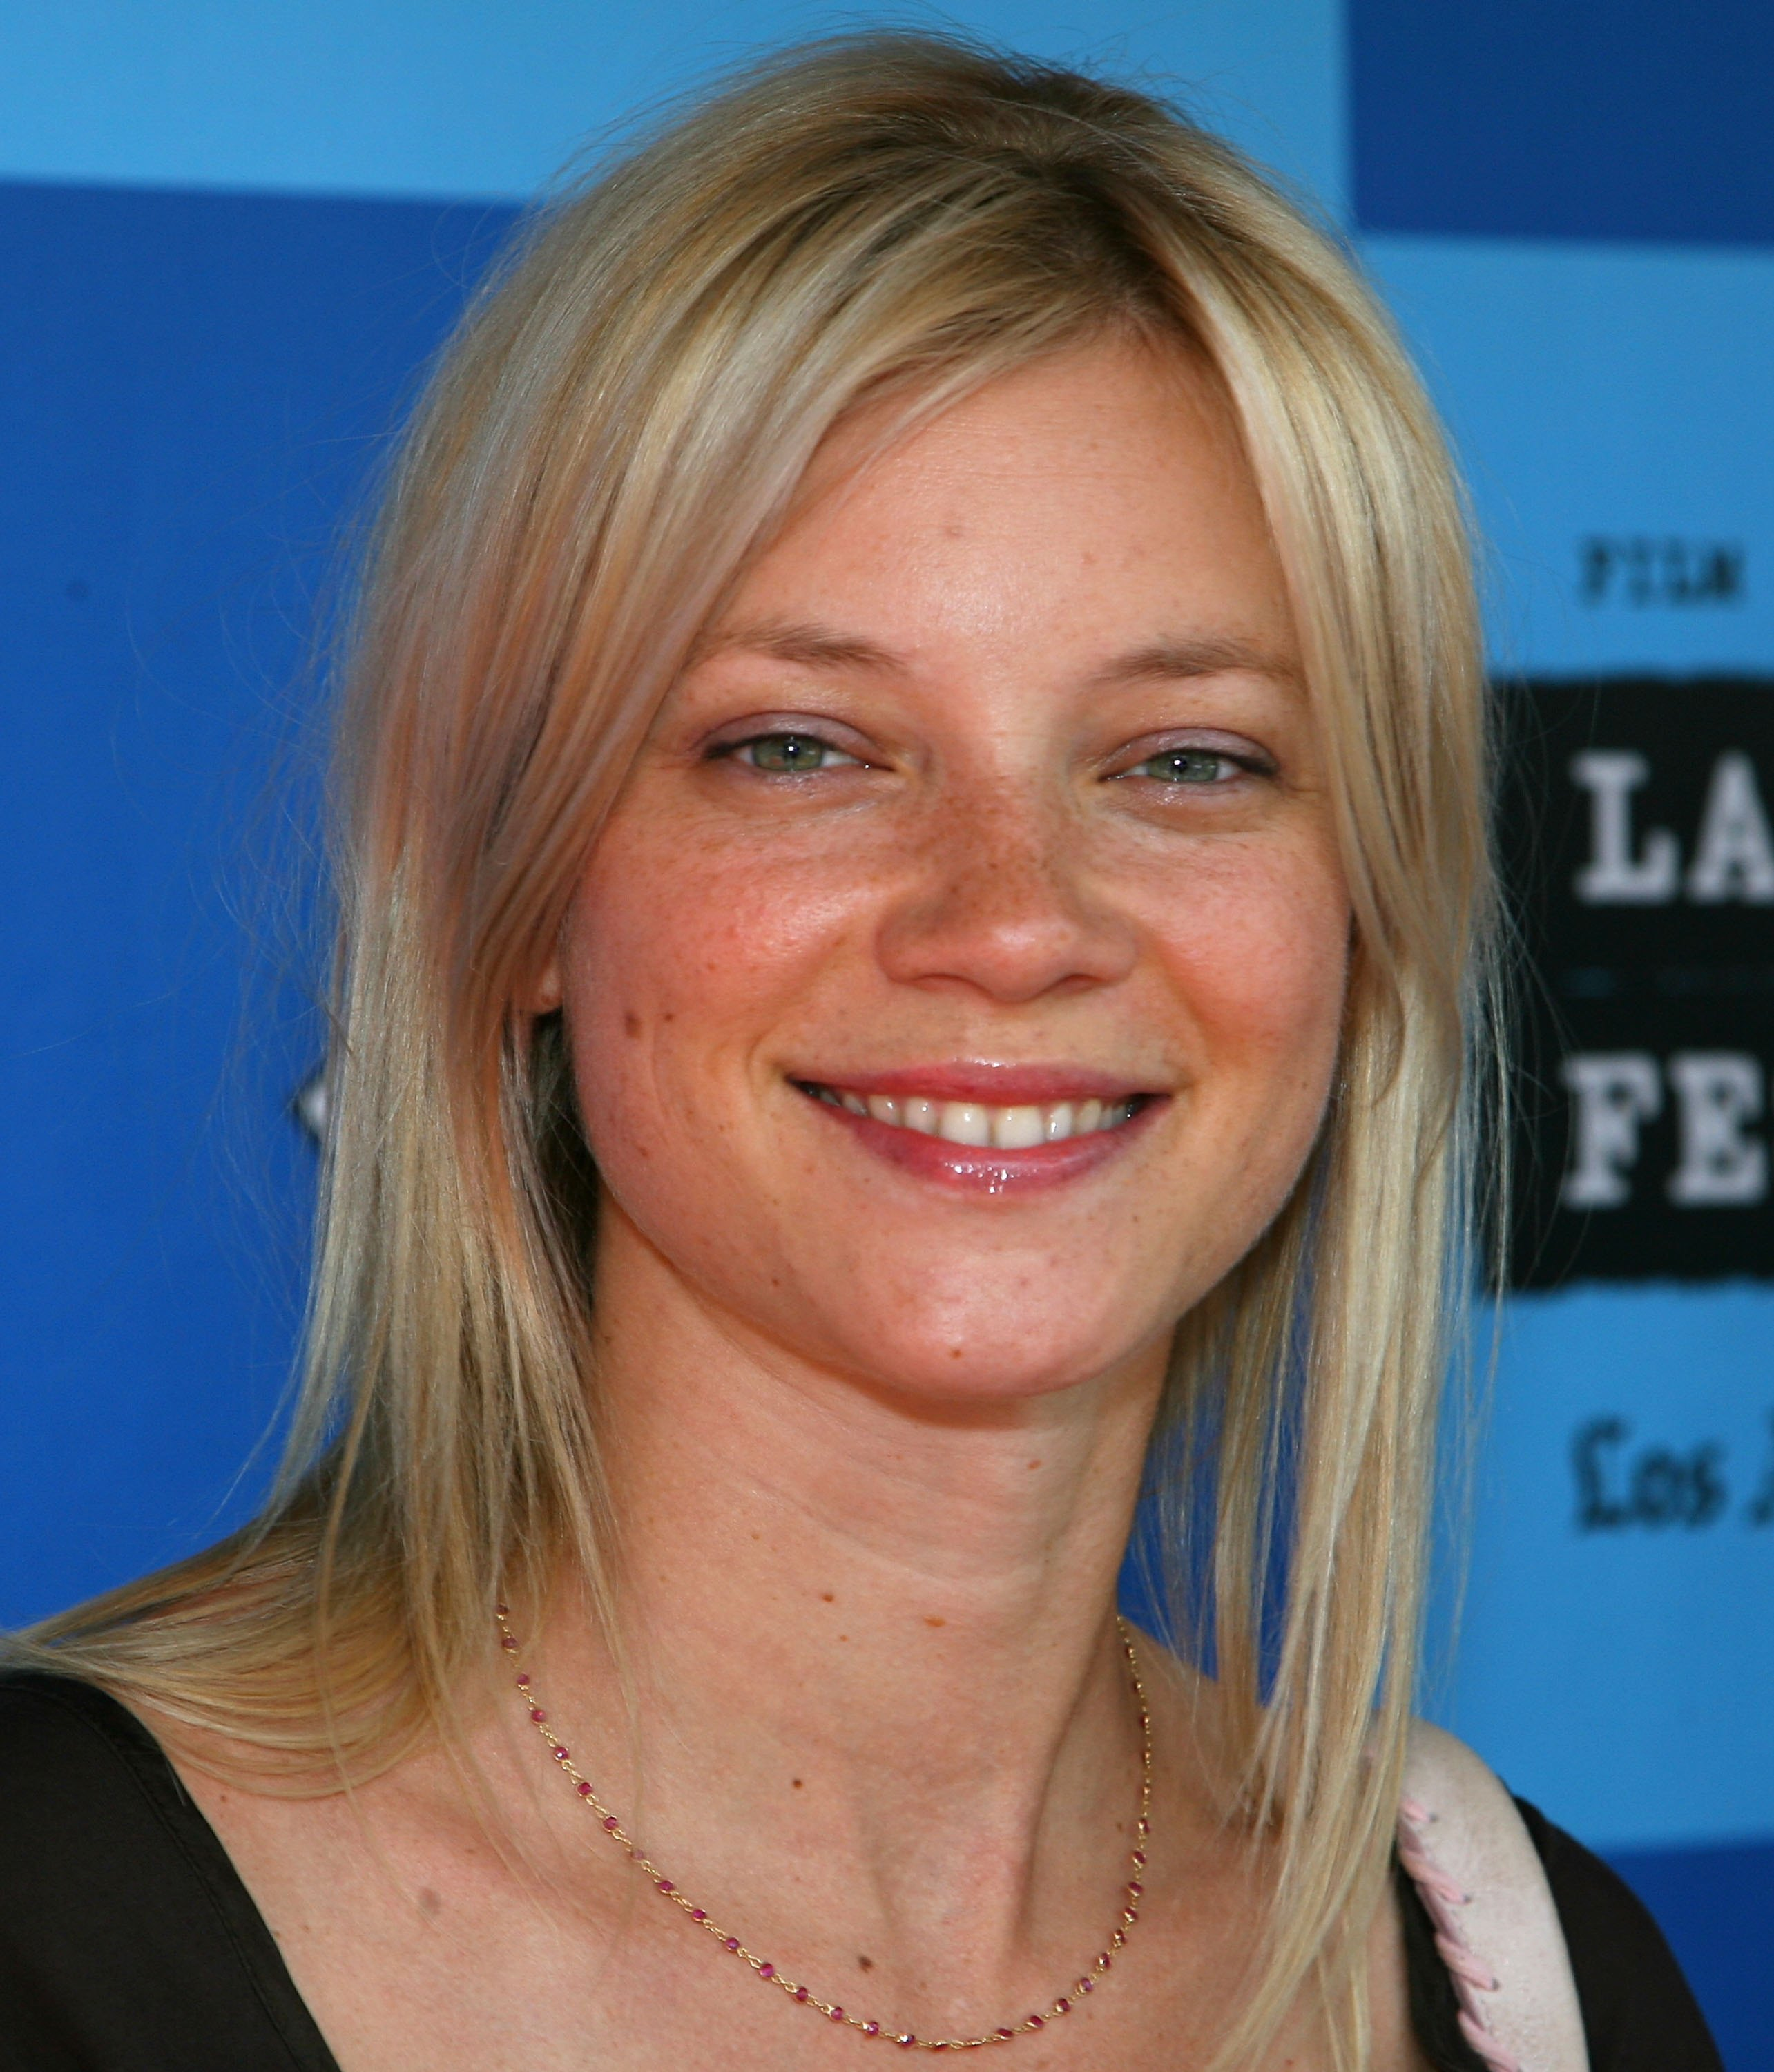 Amy Smart Hot Images 49+] amy smart wallpaper hd on wallpapersafari